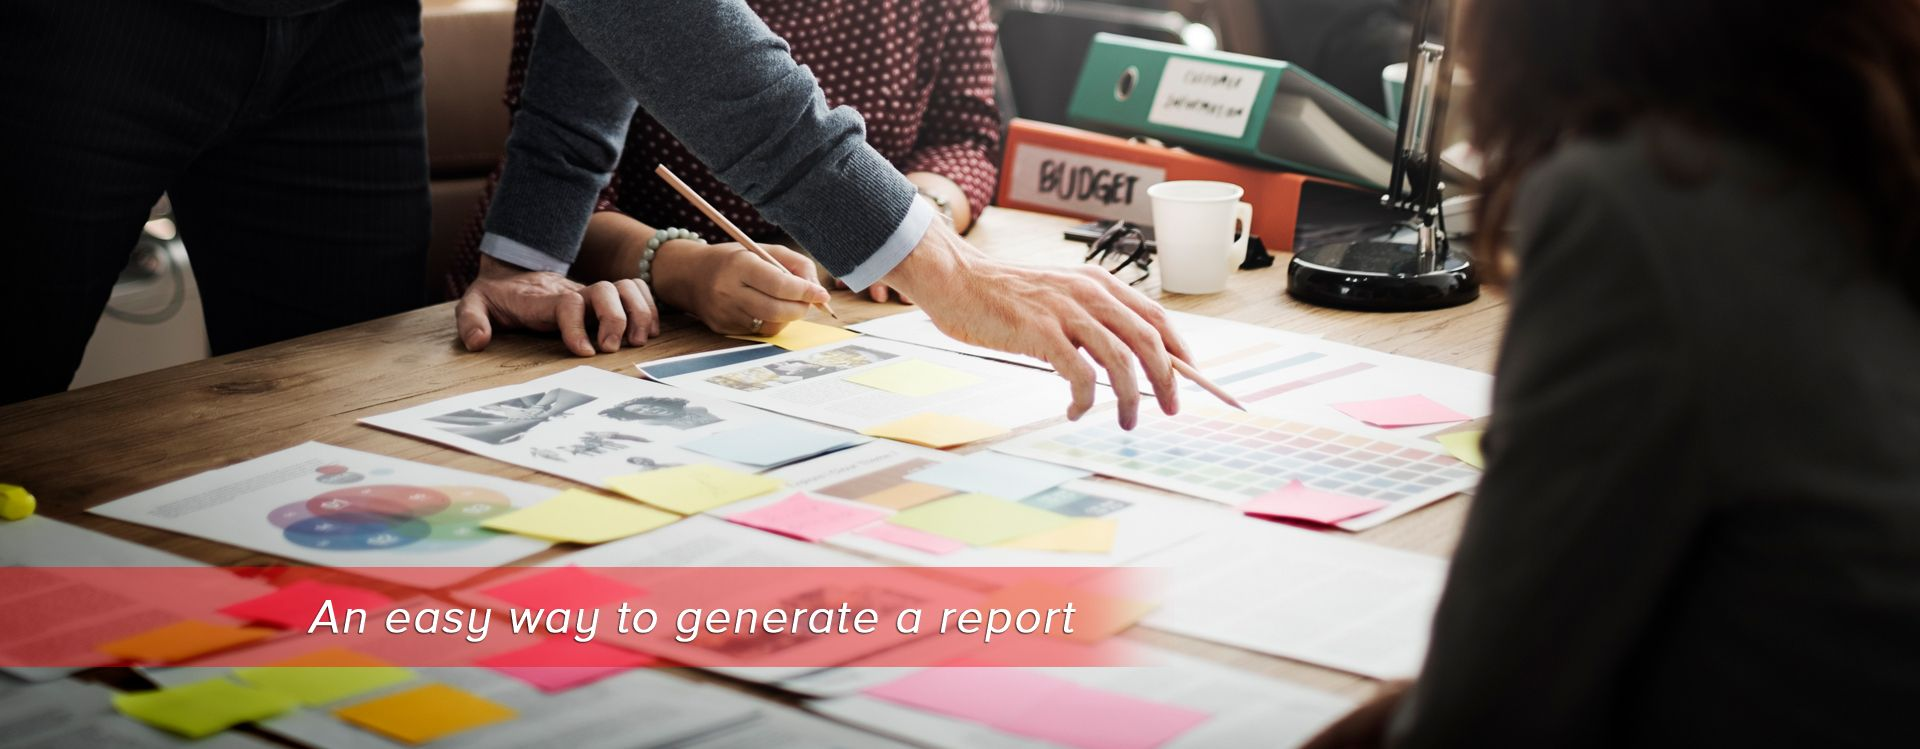 An easy way to generate a report | easy salon sofware